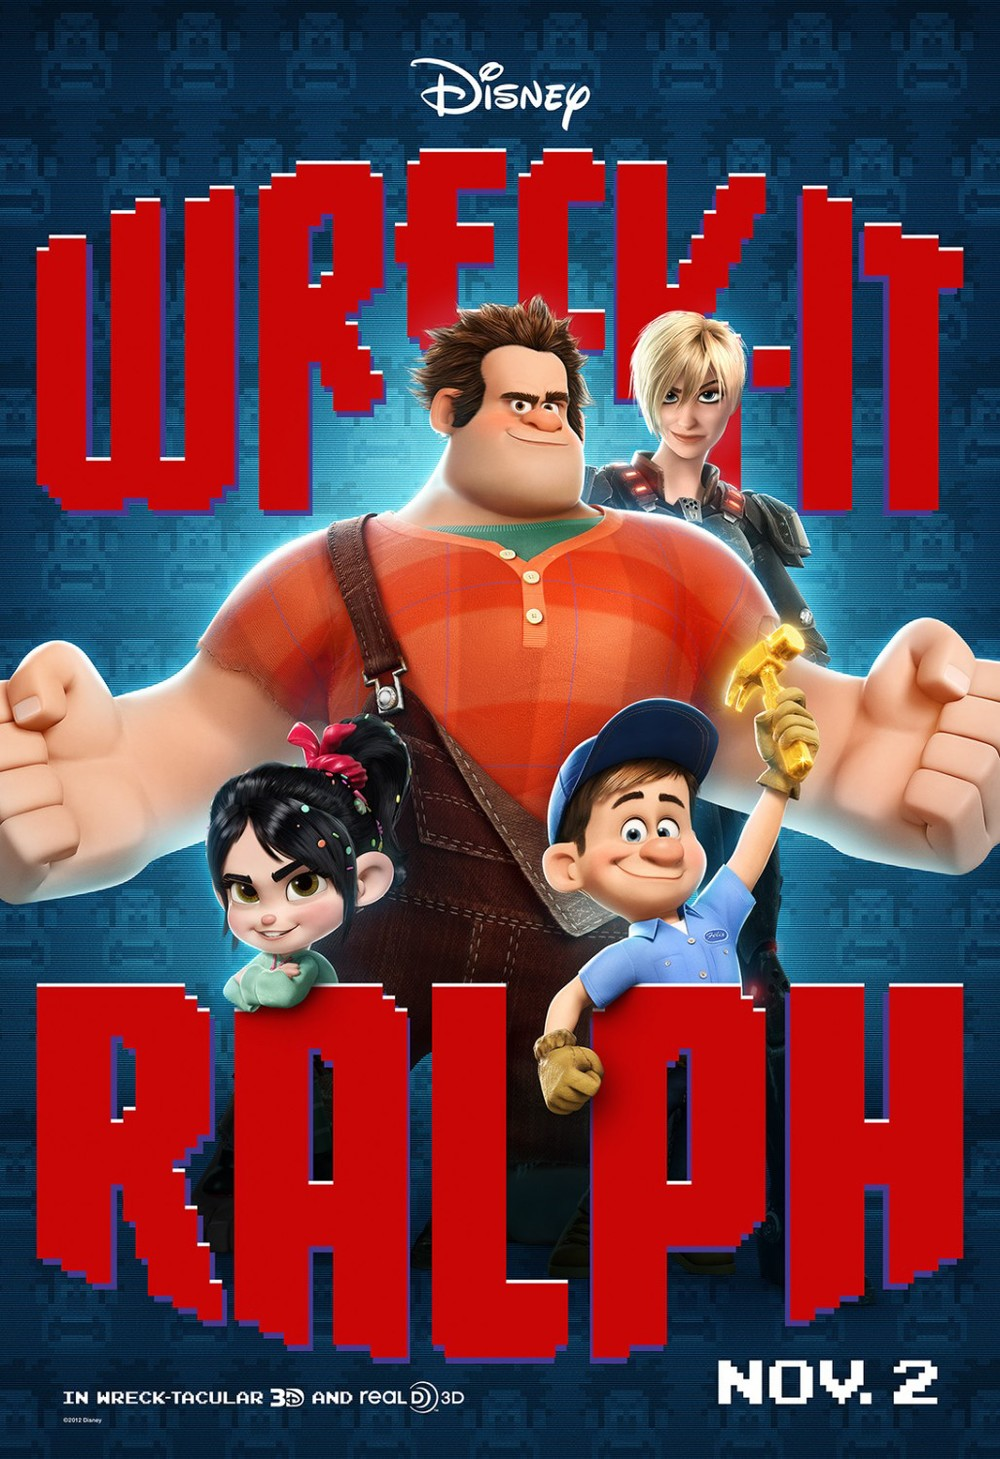 wreck-it ralph.jpeg